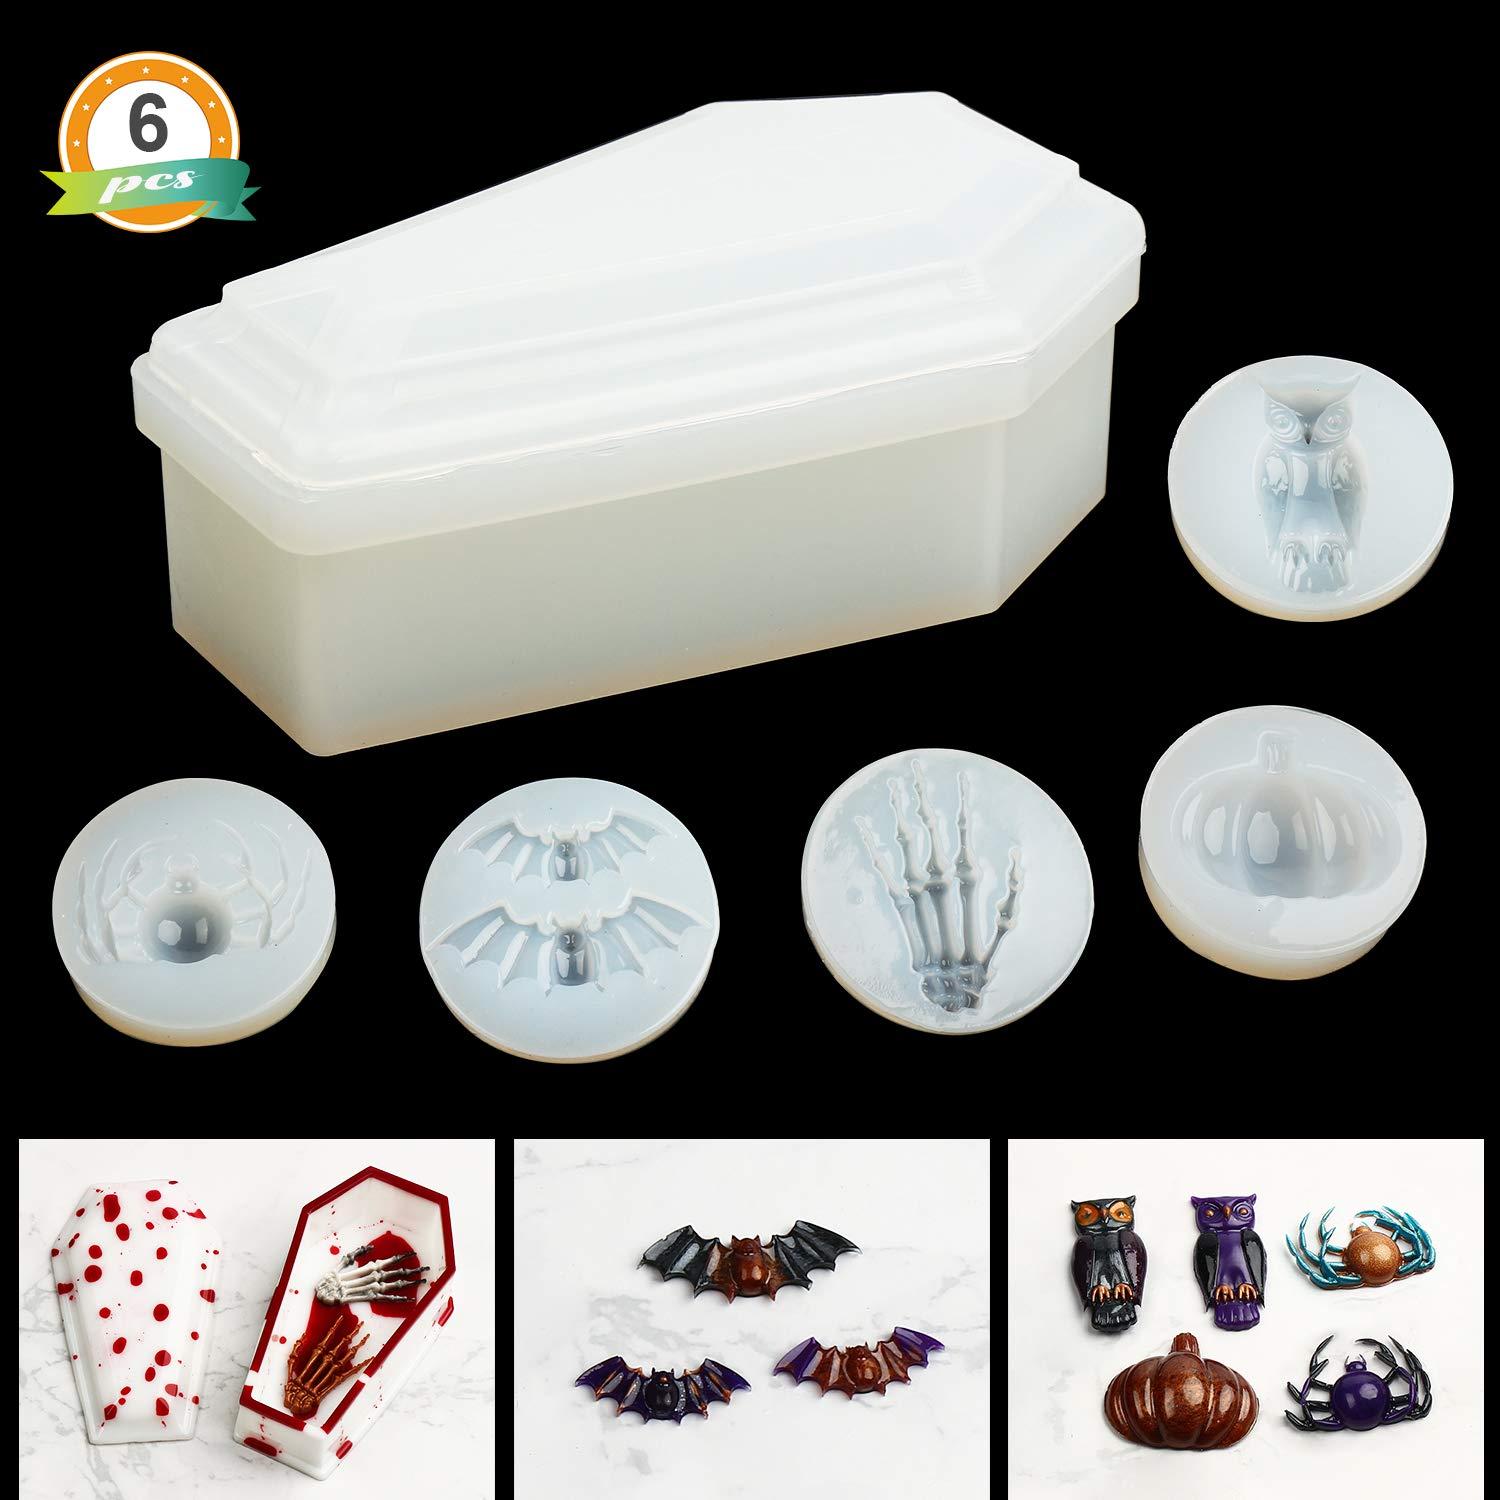 Including Trinket Box Molds and Bat LETS RESIN Halloween Themed Resin Silicone Mold Spider Owl Pumpkin Shape Keychain Mold Set Skull Hands